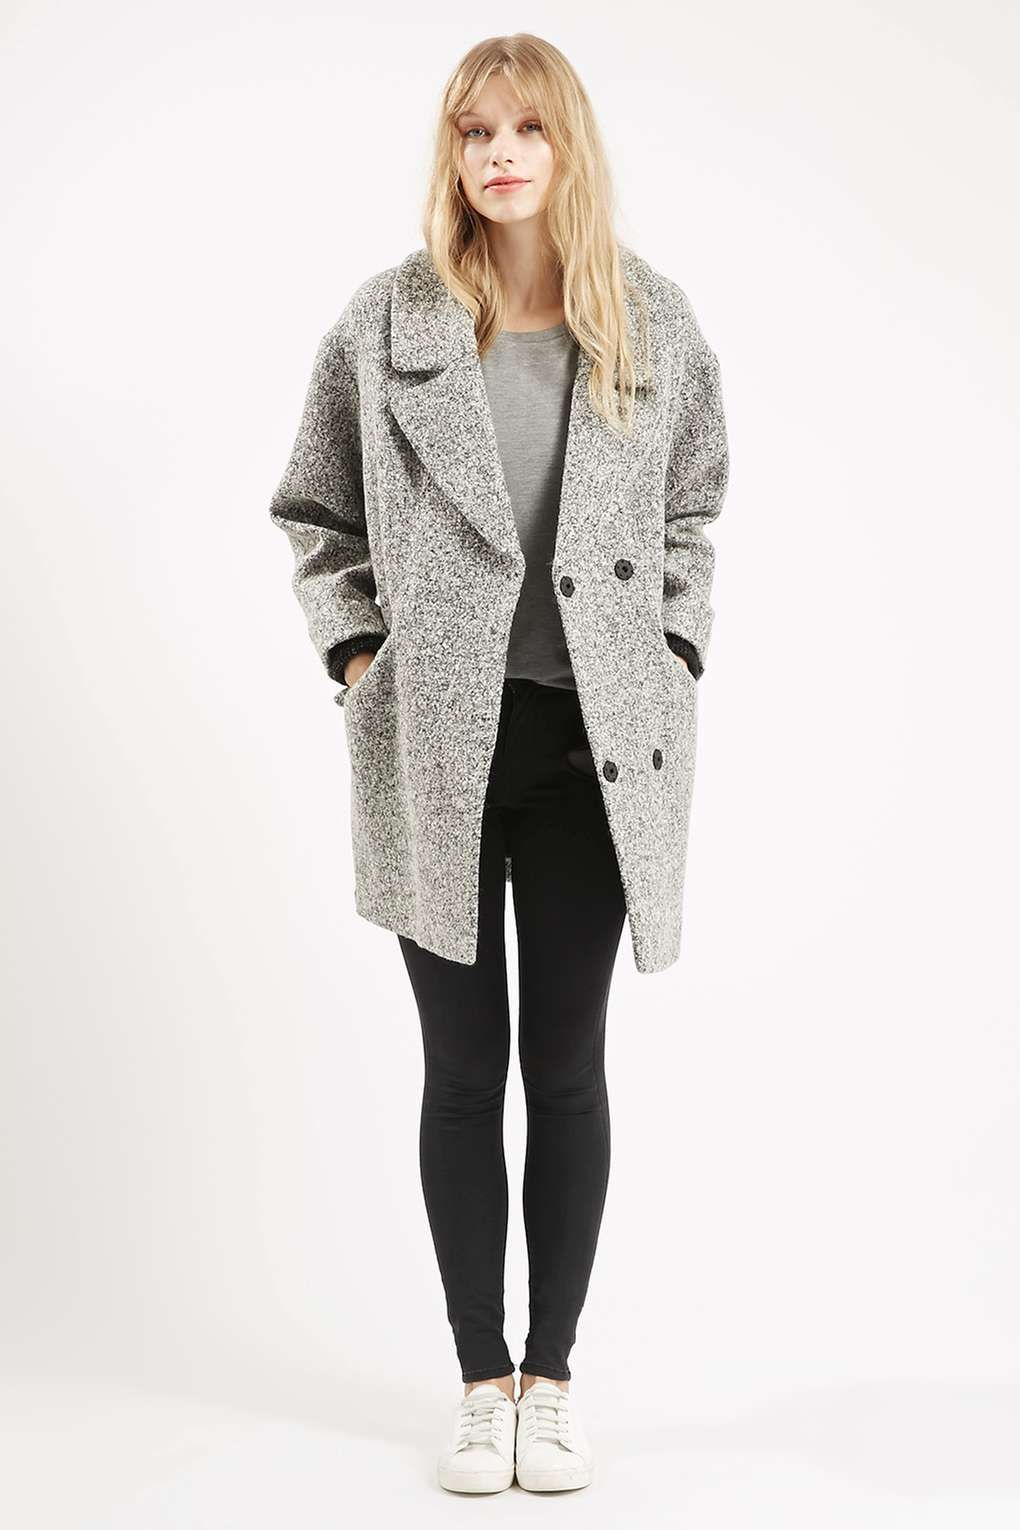 Slouchy Boucle Wool Blend Coat - Jackets & Coats - Clothing | Wool ...